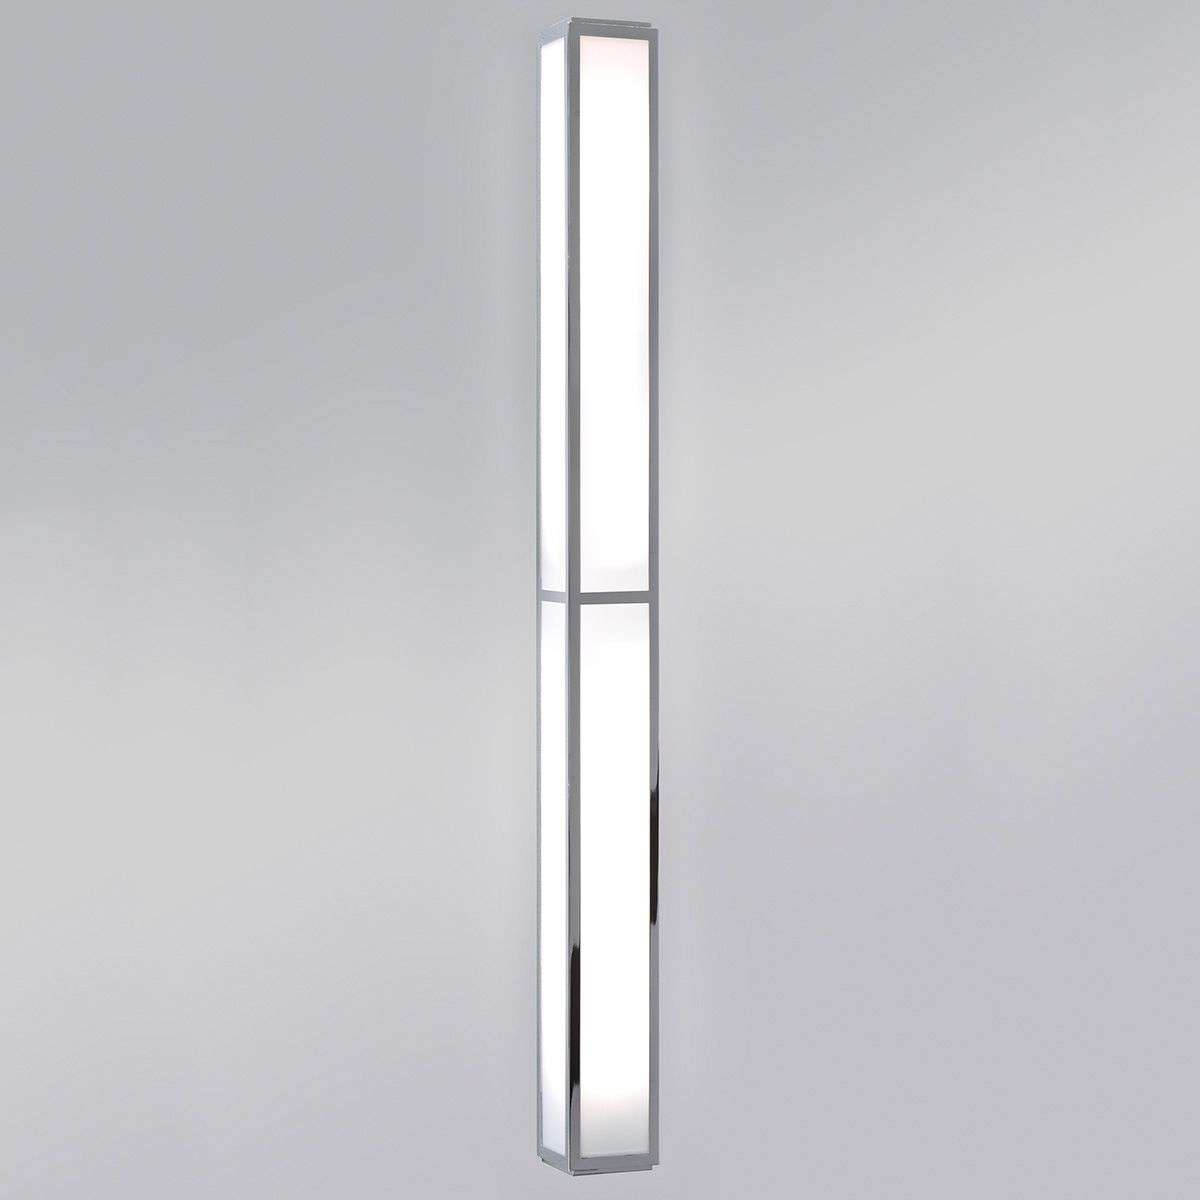 Mashiko 900 Wall Light Long-1020382-35